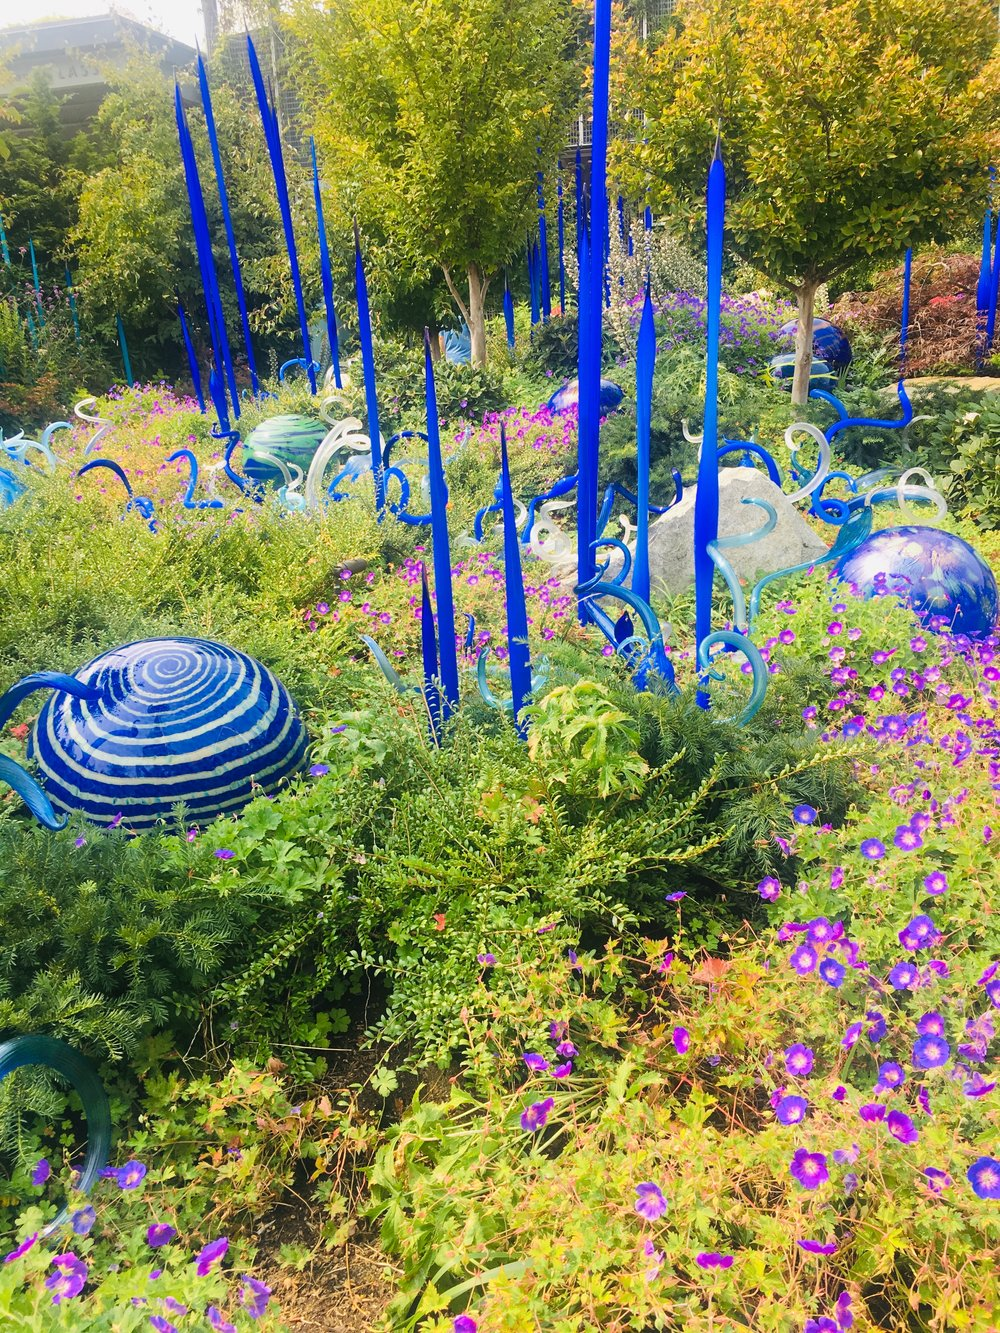 One of the beautiful glass-blown gardens at the Chihuly Museum is a must see!